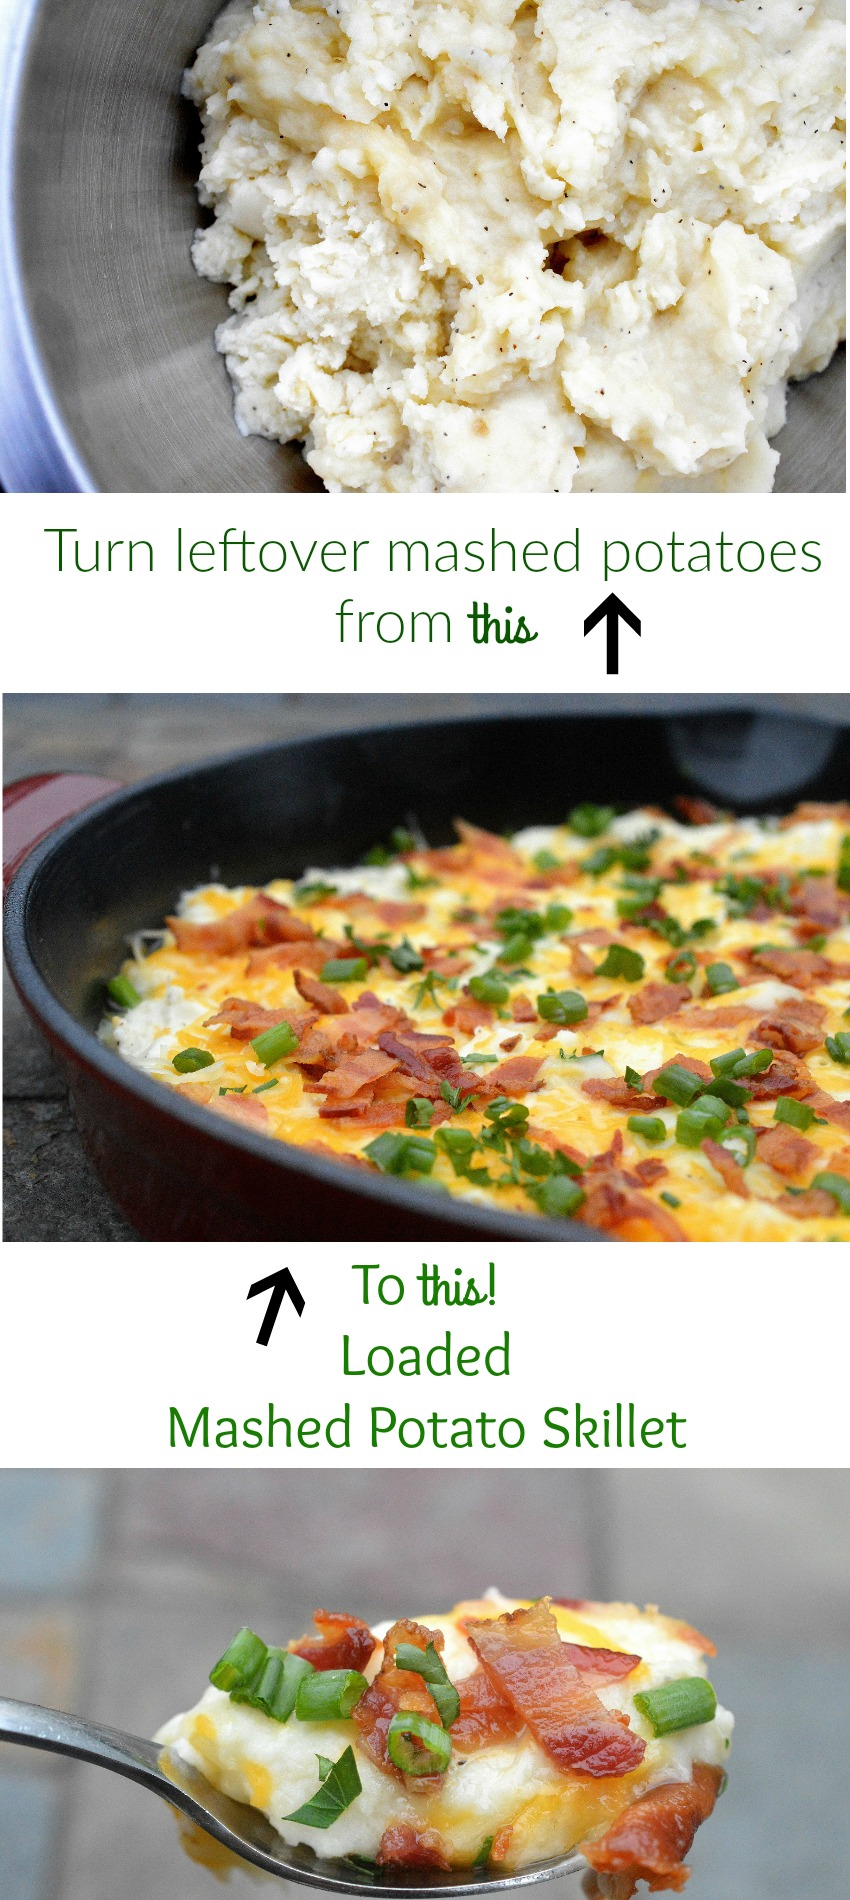 Loaded Mashed Potato Skillet - The BEST use for leftover mashed potatoes!